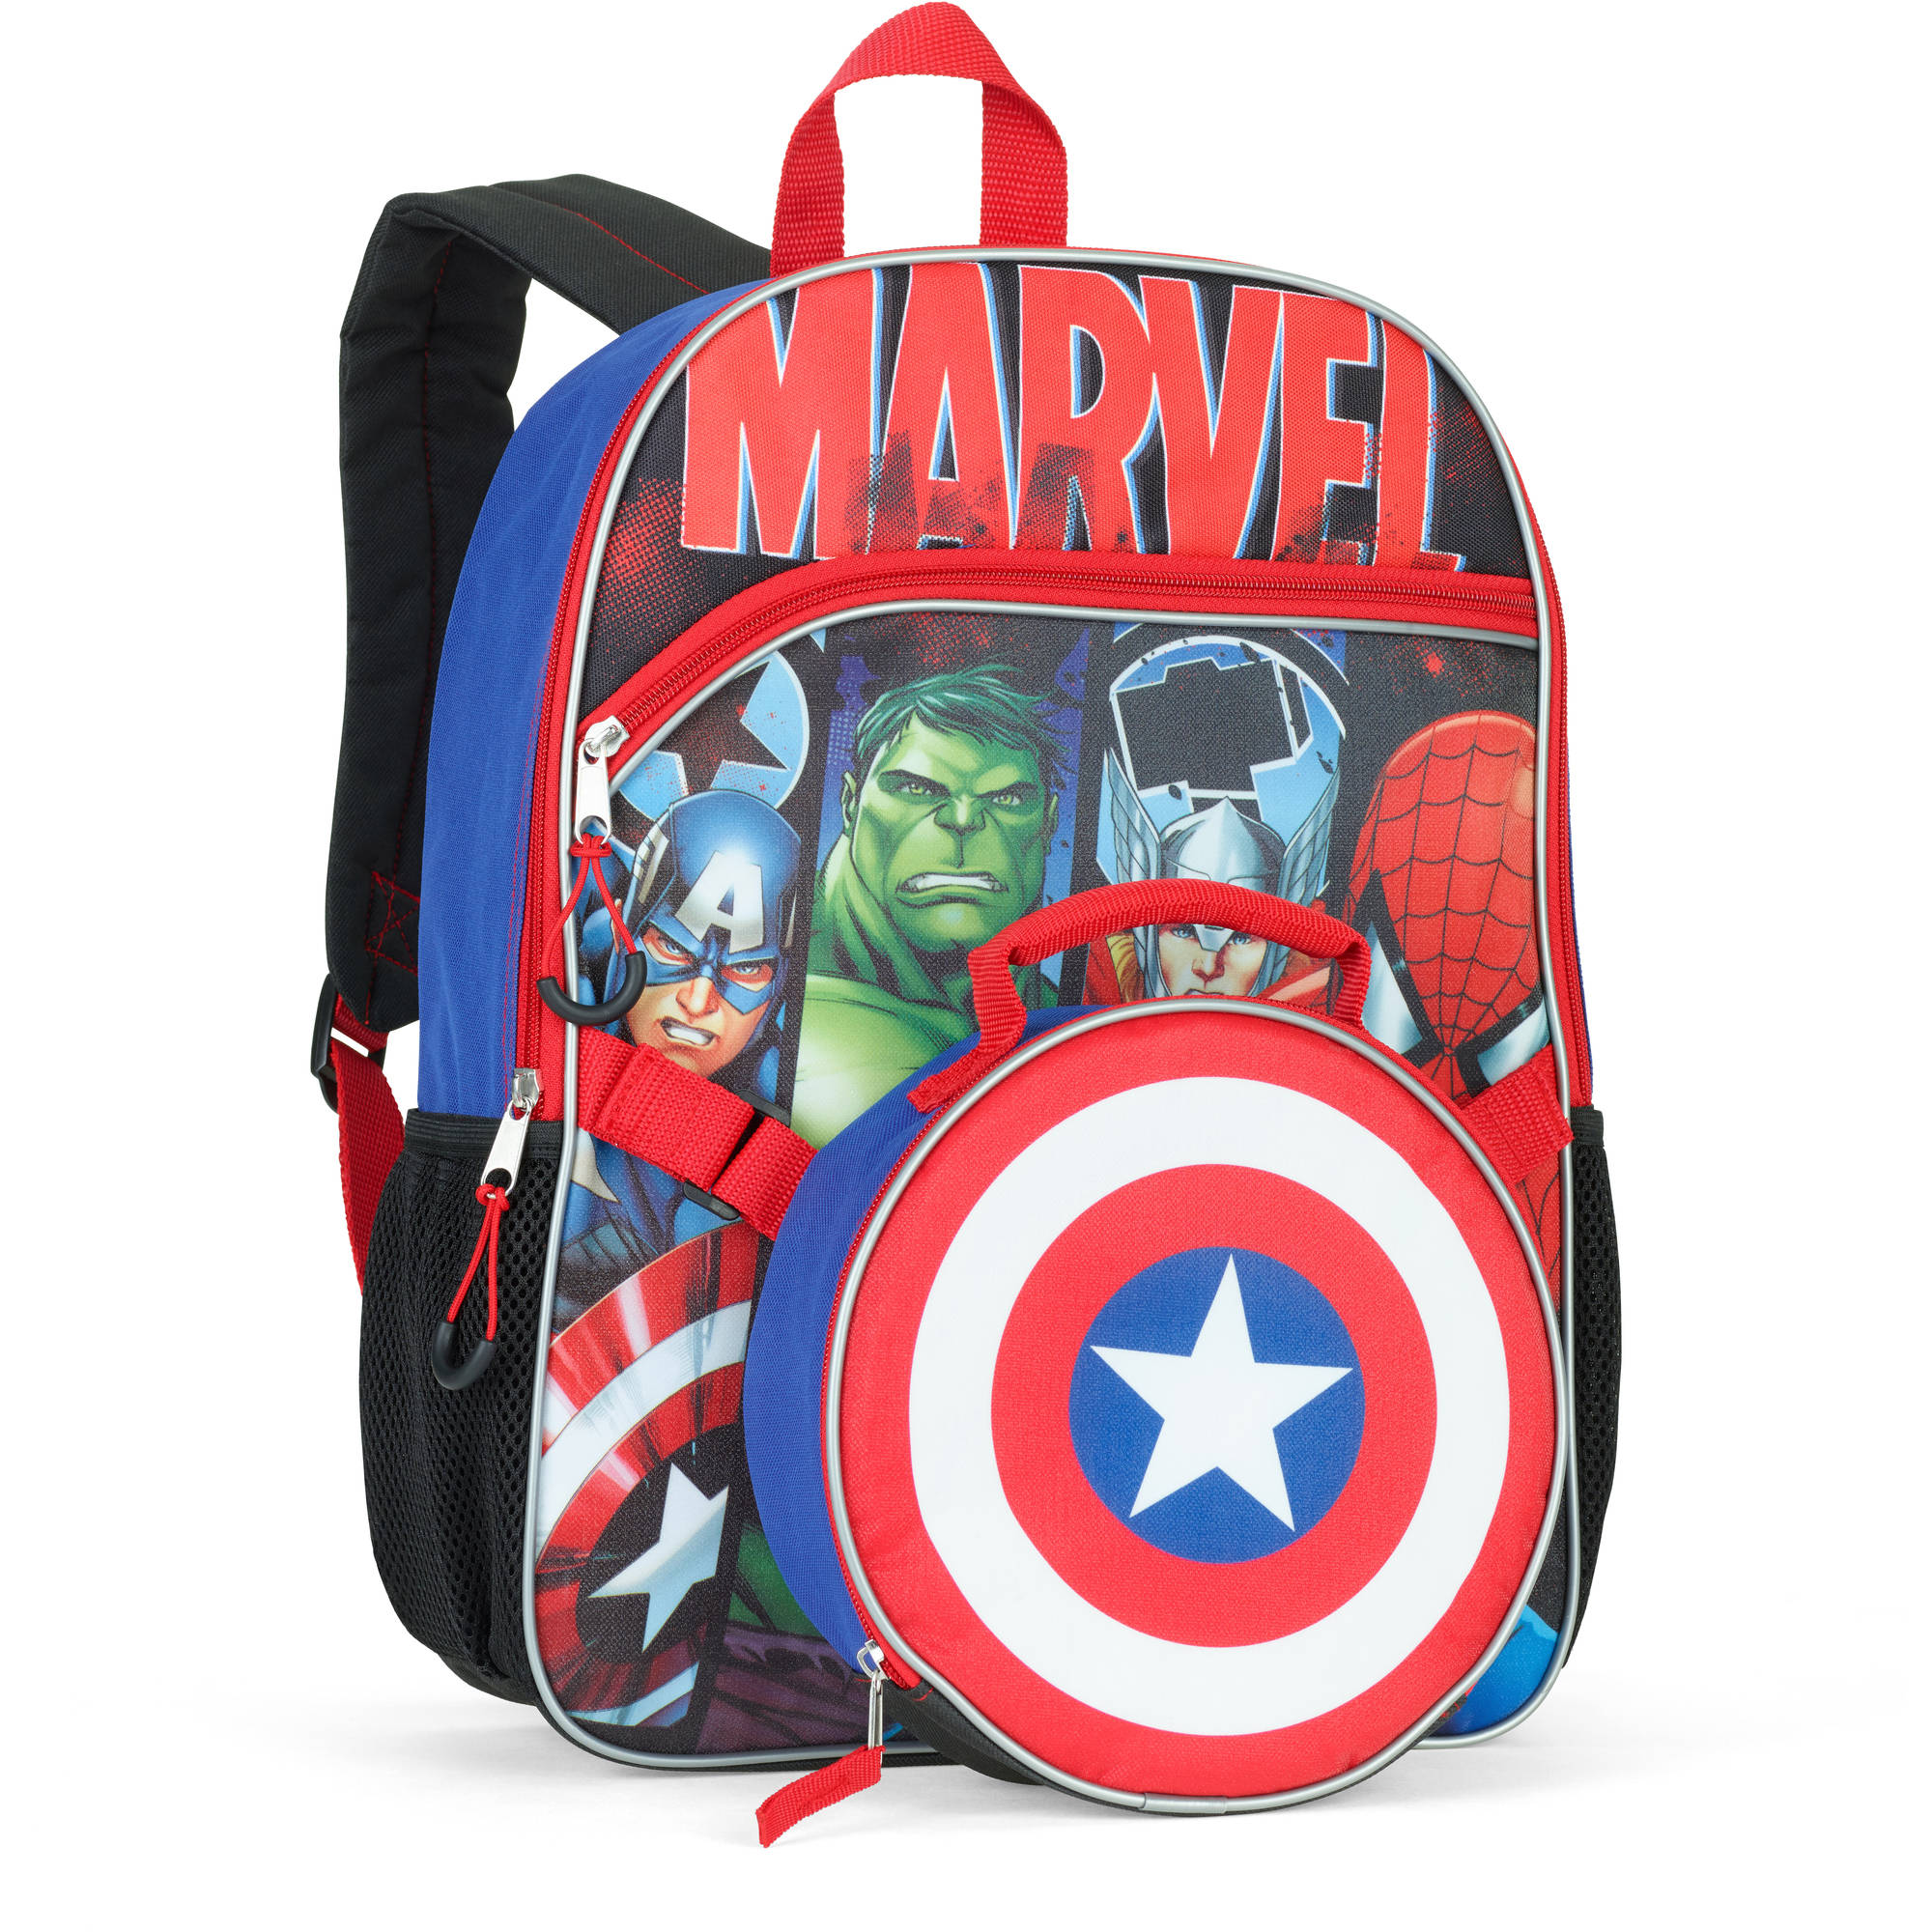 "Marvel Universe 16"" Backpack With Detachable Lunch Bag"